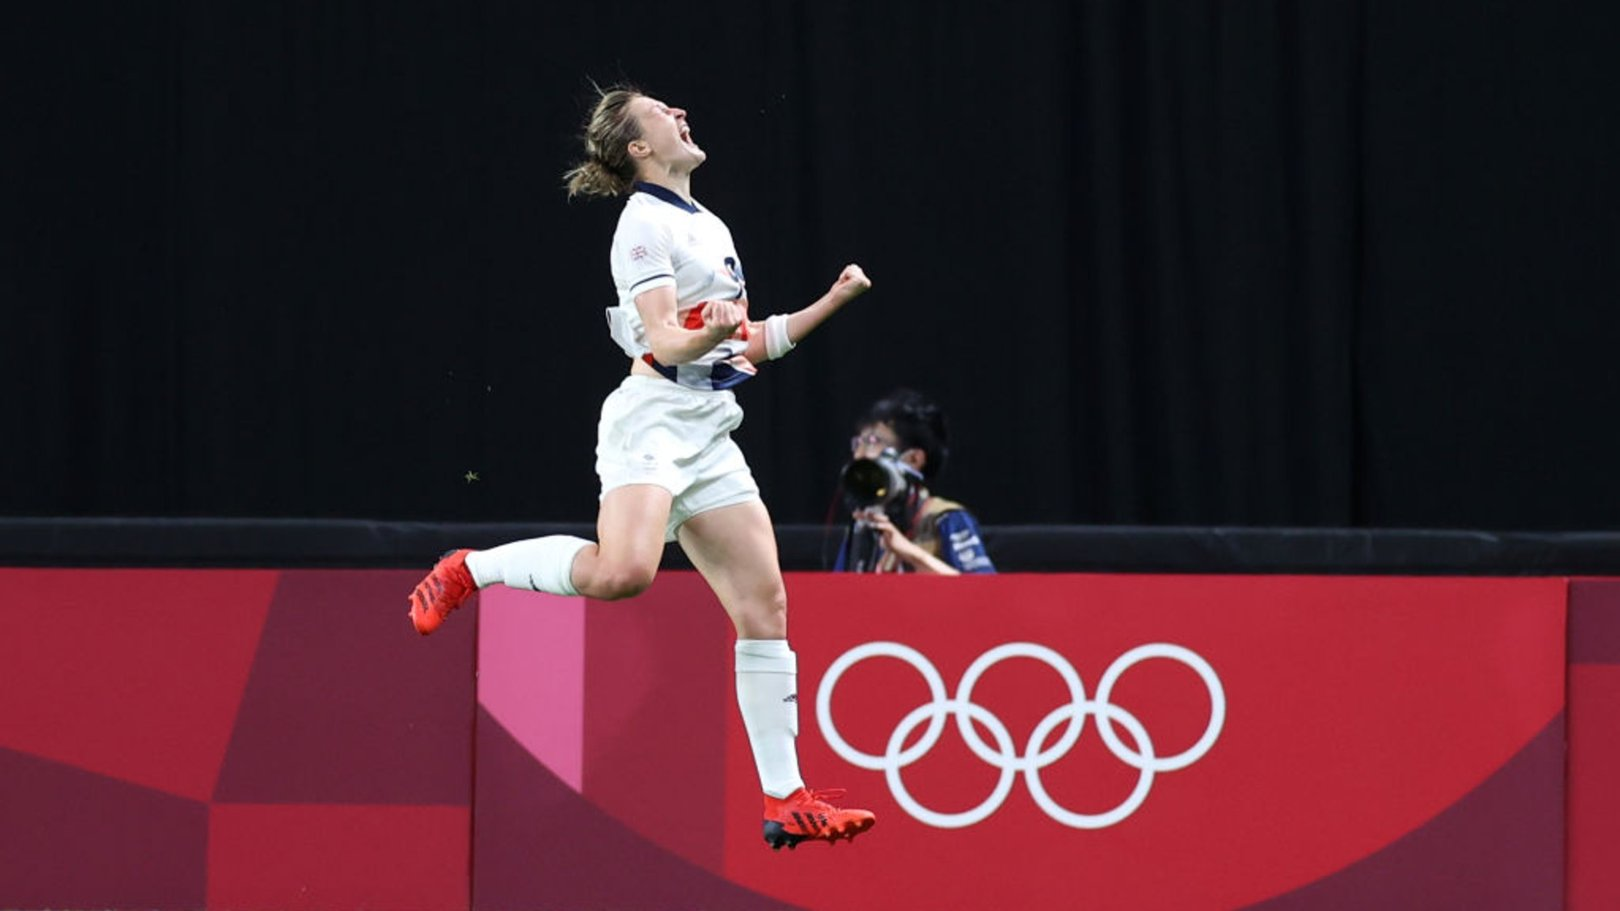 White header sees Team GB into Olympics quarters